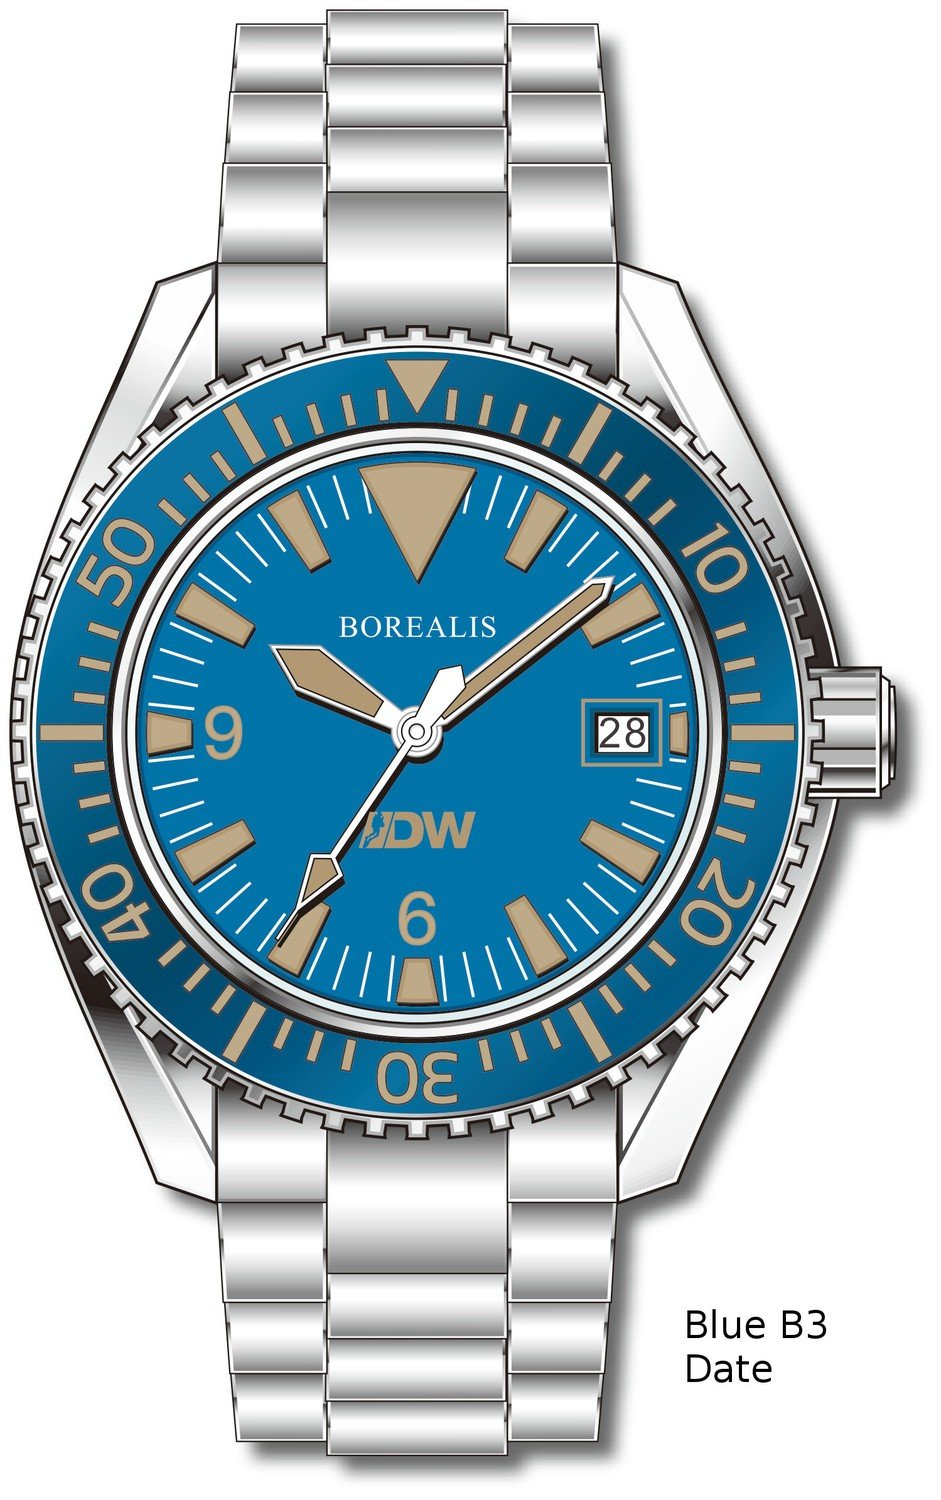 Pre-Order Borealis Estoril 300 for Diver's Watches Facebook Group Blue Dial Big Triangle Date Blue B3 Date